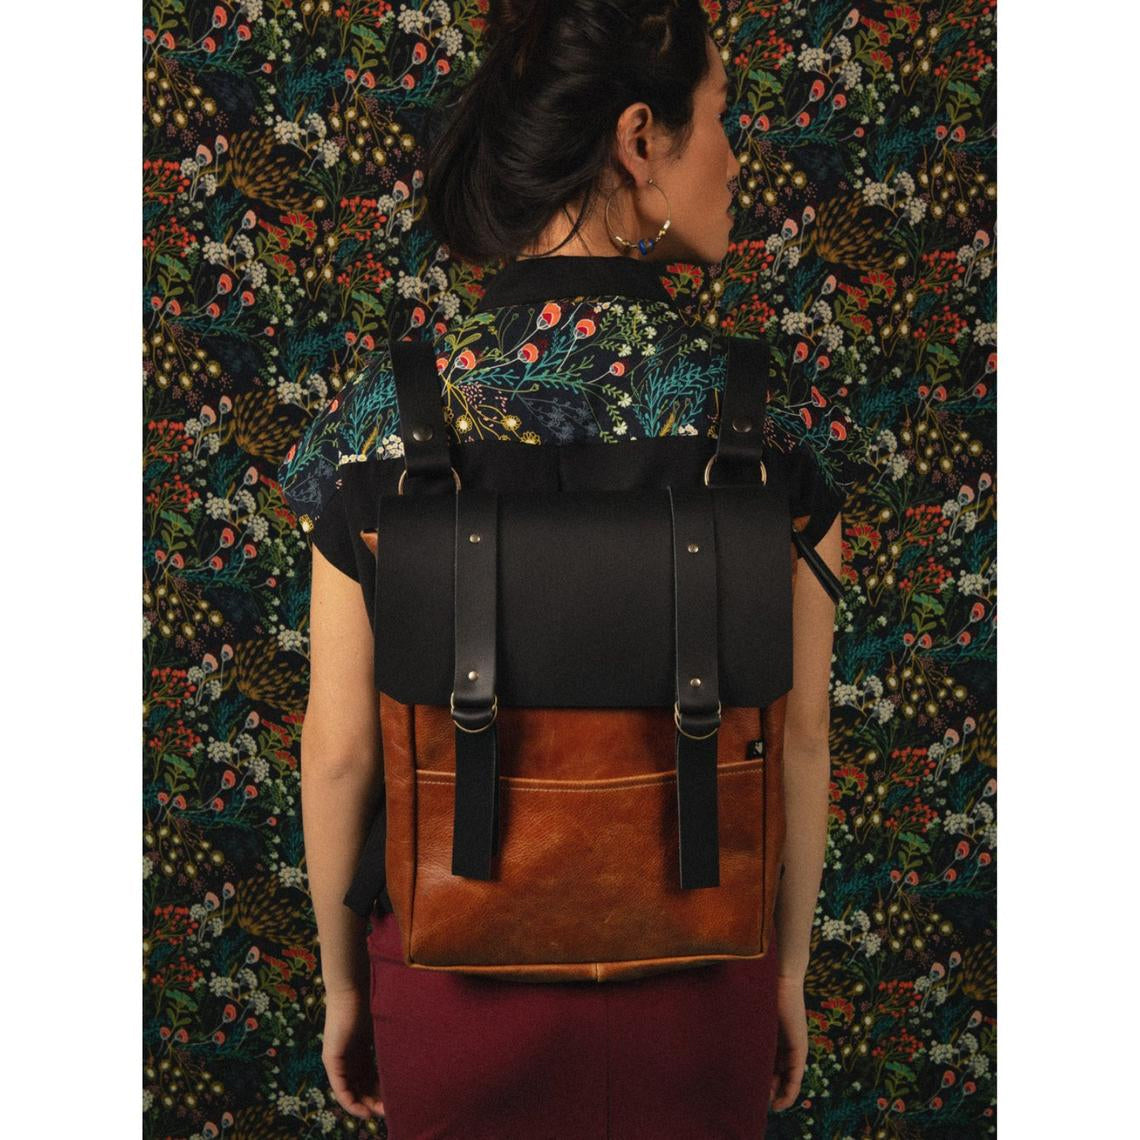 Model Wearing a Caramel & Black Handcrafted Leather Backpack / Crossbody Bag - Sold by Chic & Basta